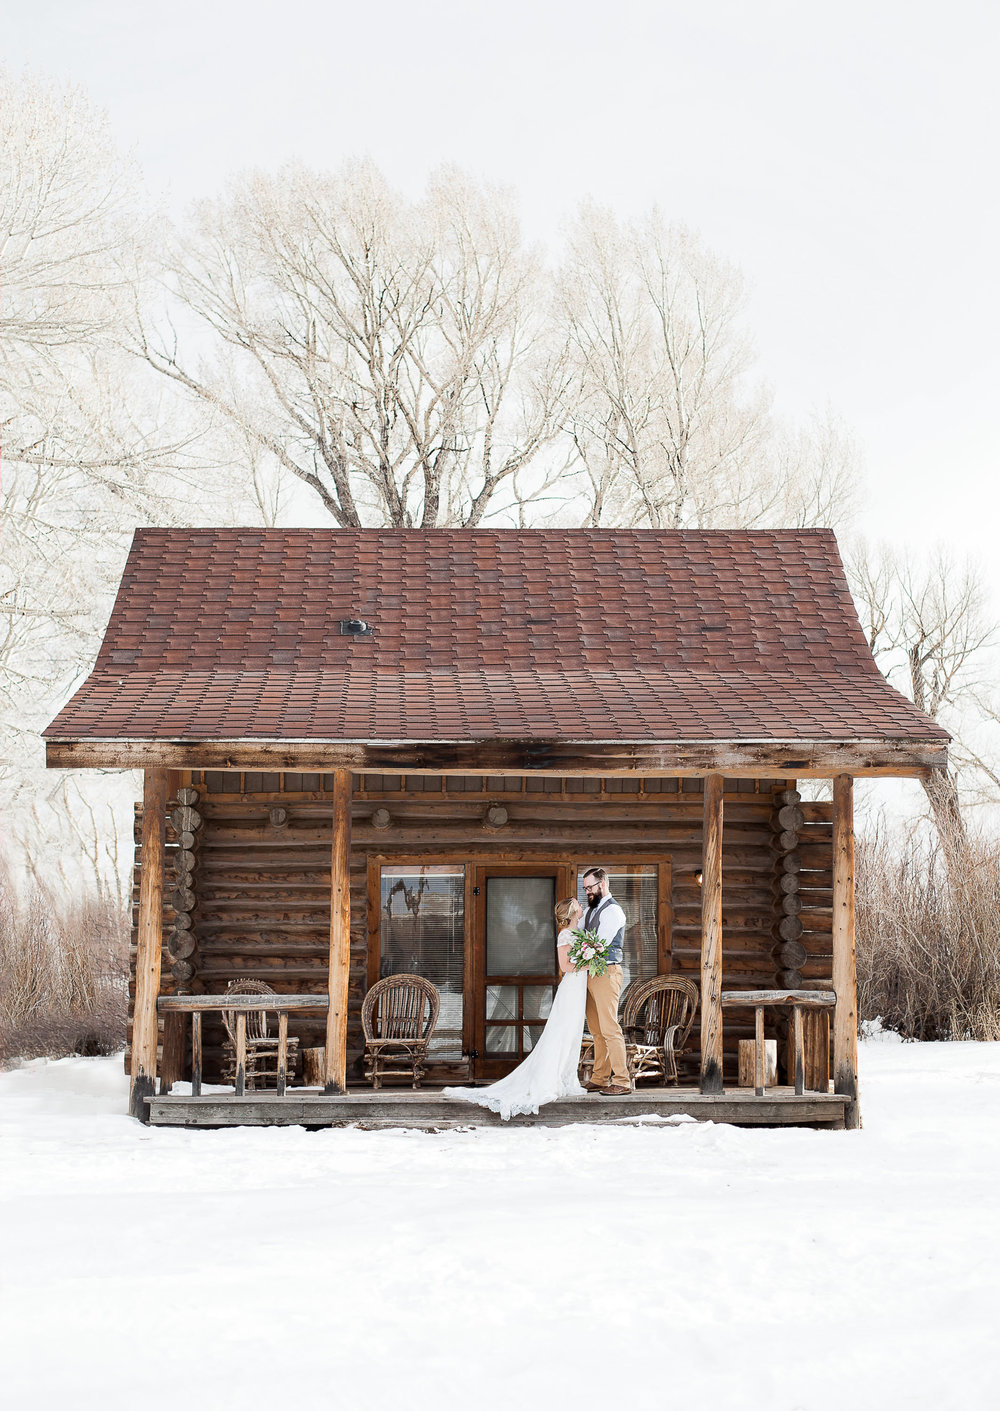 This beautiful cabin is located at the Vee Bar Guest ranch in Centennial.  I loved every minute of this styled winter inspirational shoot, and it was featured in Rocky Mountain Bride this summer.   https://www.wyomingweddingphotographer.com/megan-lee-photography/featured-rocky-mountain-bride-magazine